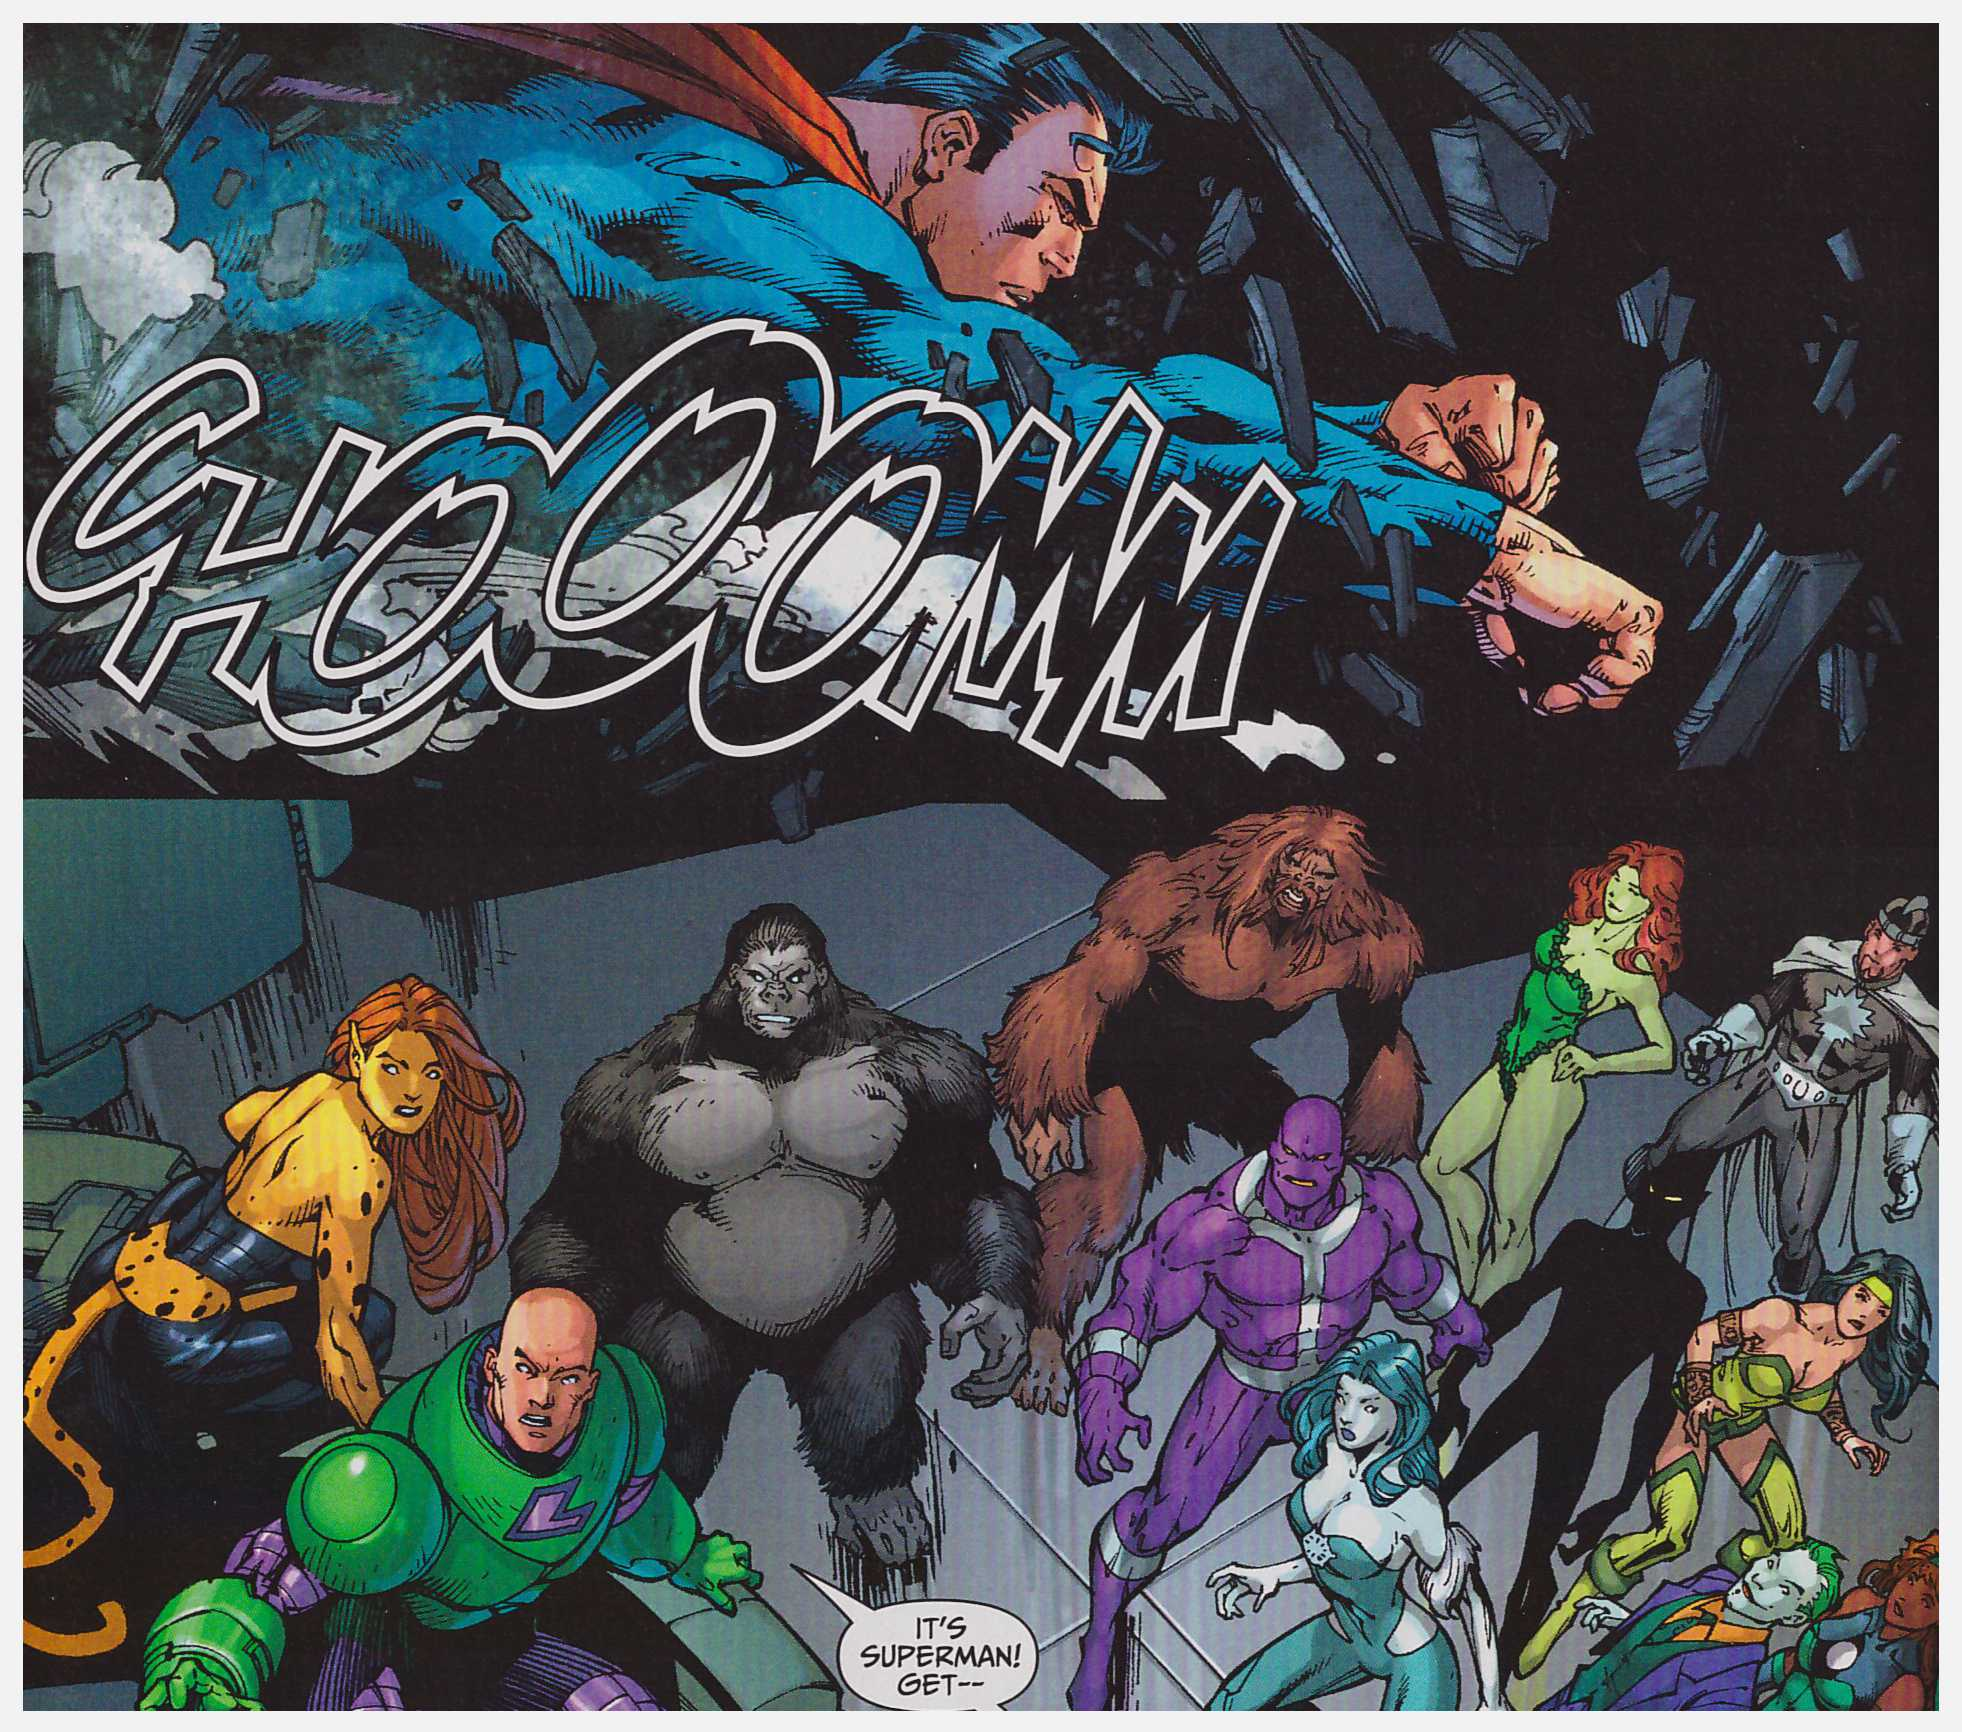 Justice League of America: The Injustice League review